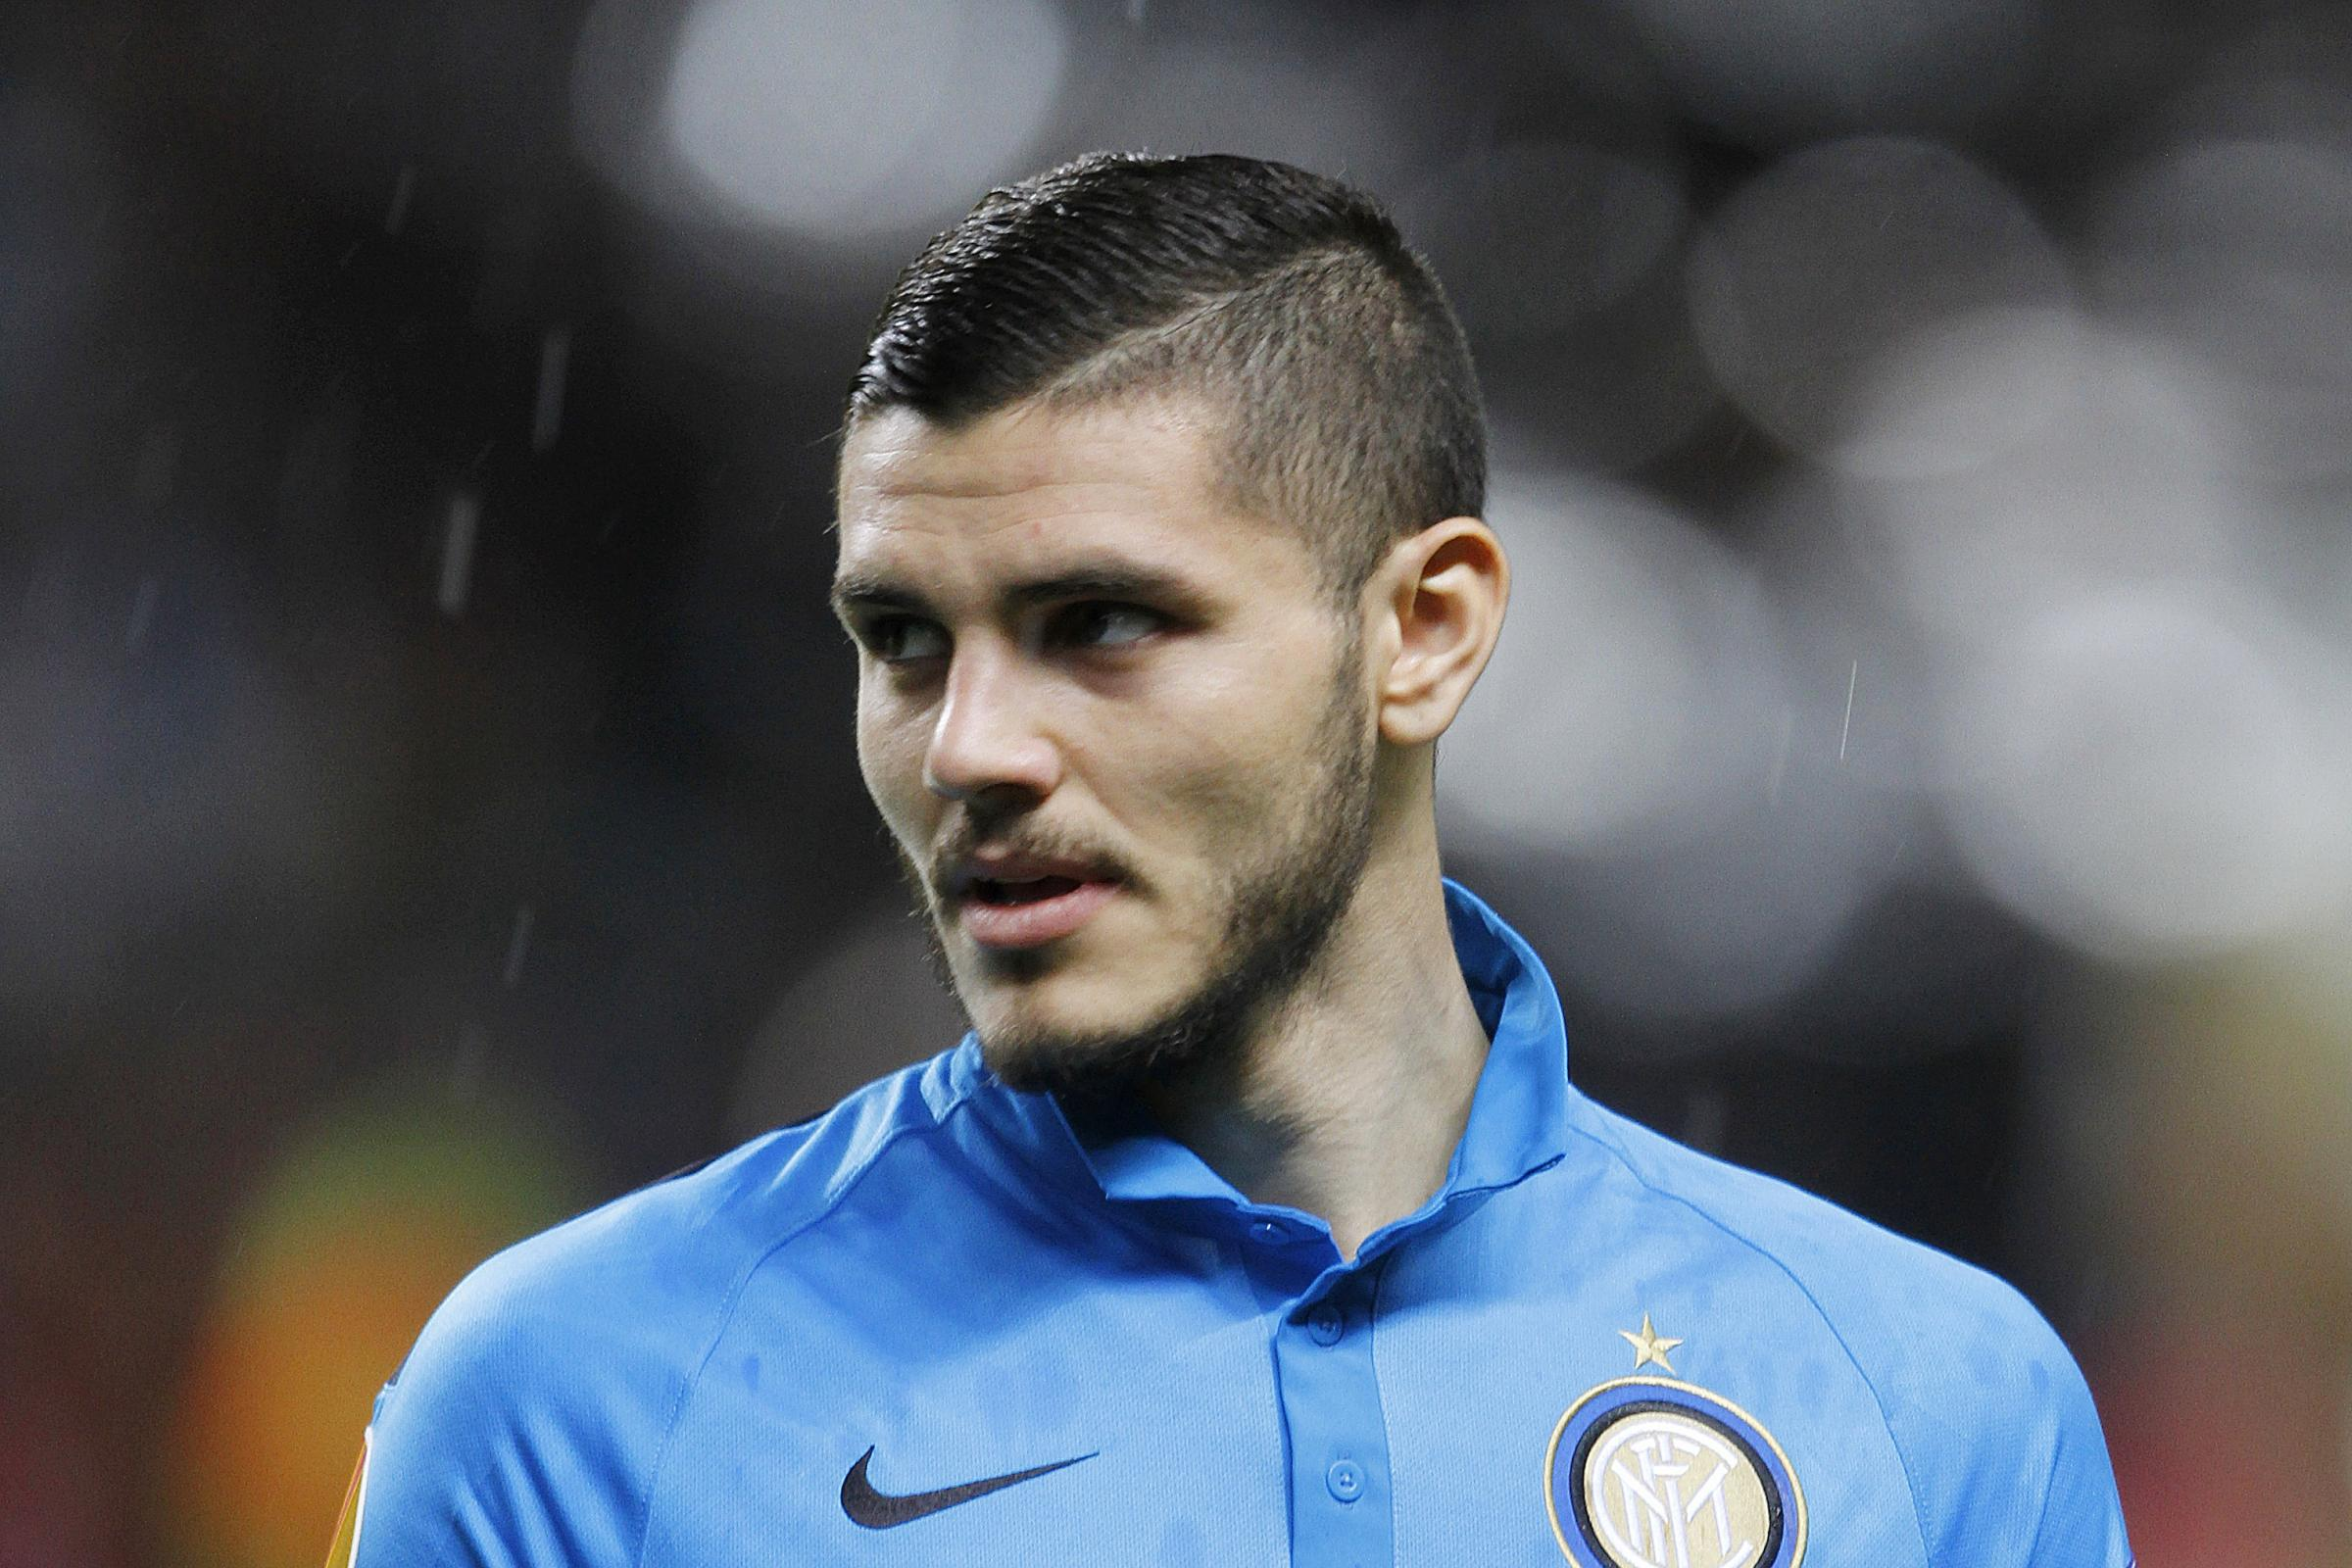 Mauro Icardi is the subject of transfer rumours